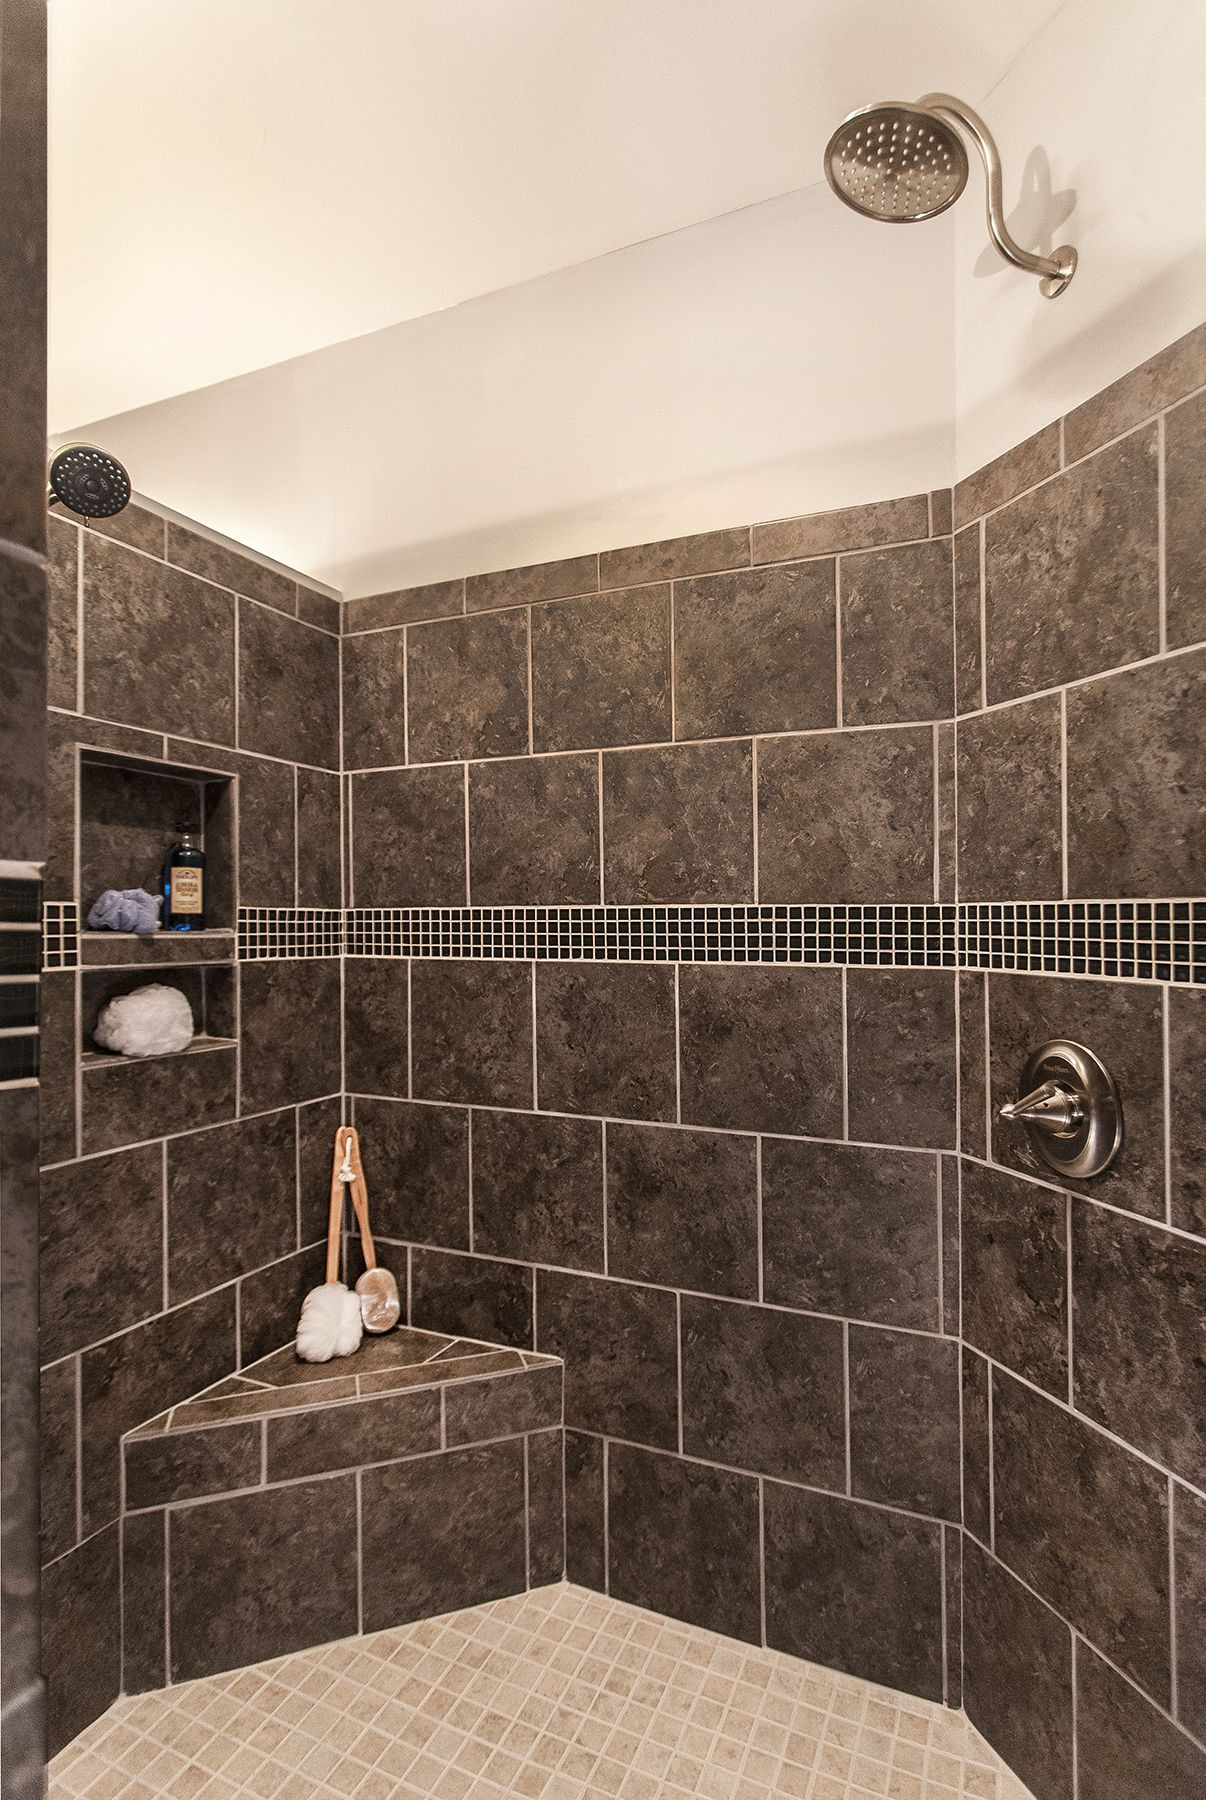 Large Walk In Showers without Doors Lovely Greatest Shower Ever Walk In Shower with No Door 2 Shower